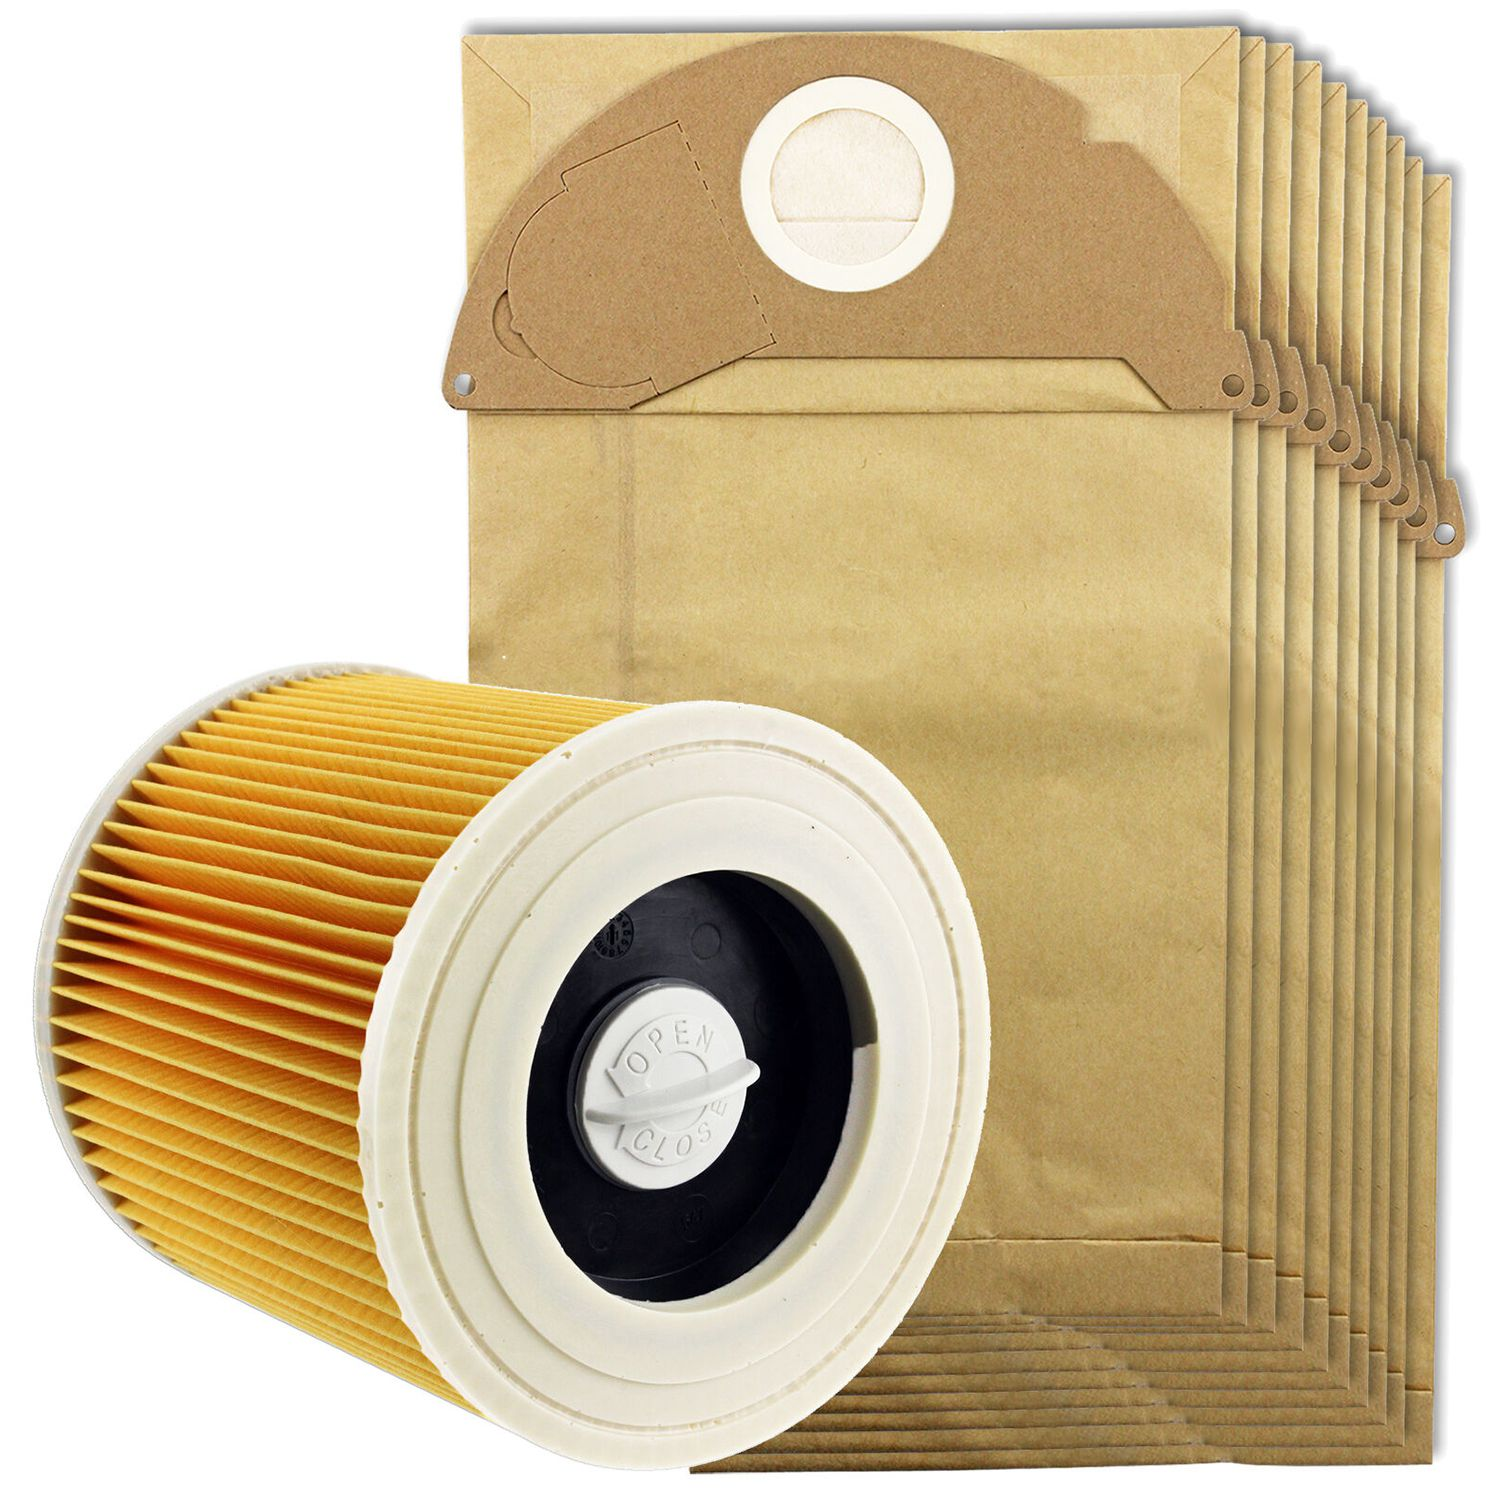 For Karcher Wet Dry Wd2 Vacuum Cleaner Filter And 10x Dust Bags in Vacuum Cleaner Parts from Home Appliances